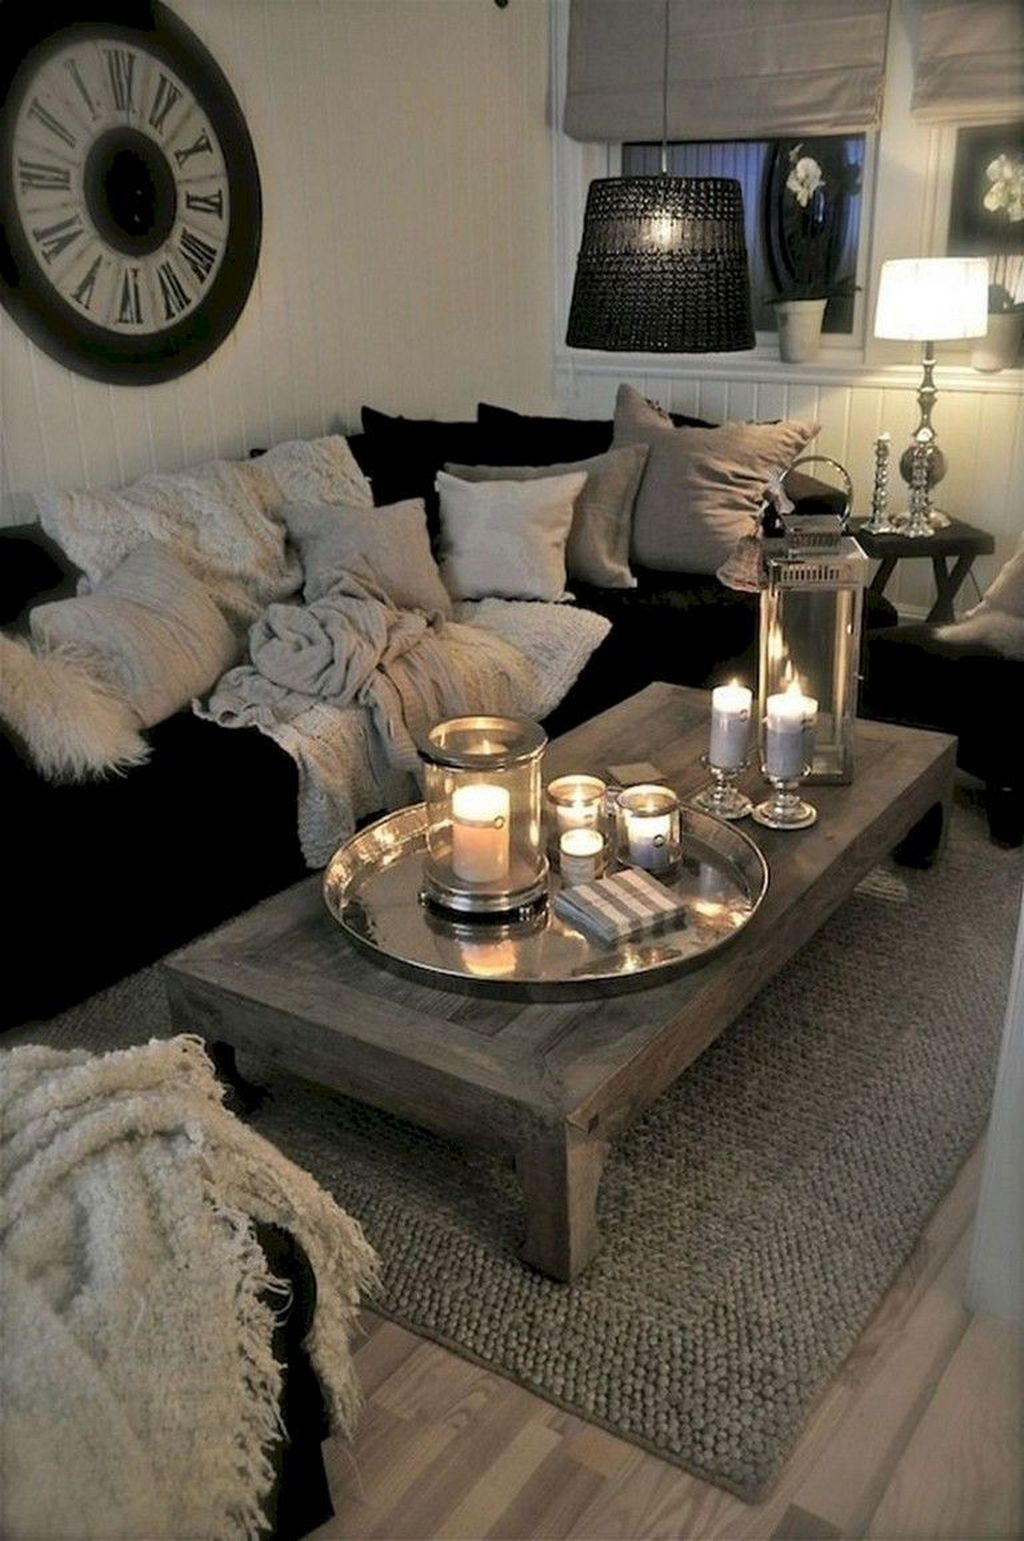 Decoomo - Trends Home Decoration Ideas in 2020 | Apartment decorating  rental, First apartment decorating, Living room decor on a budget